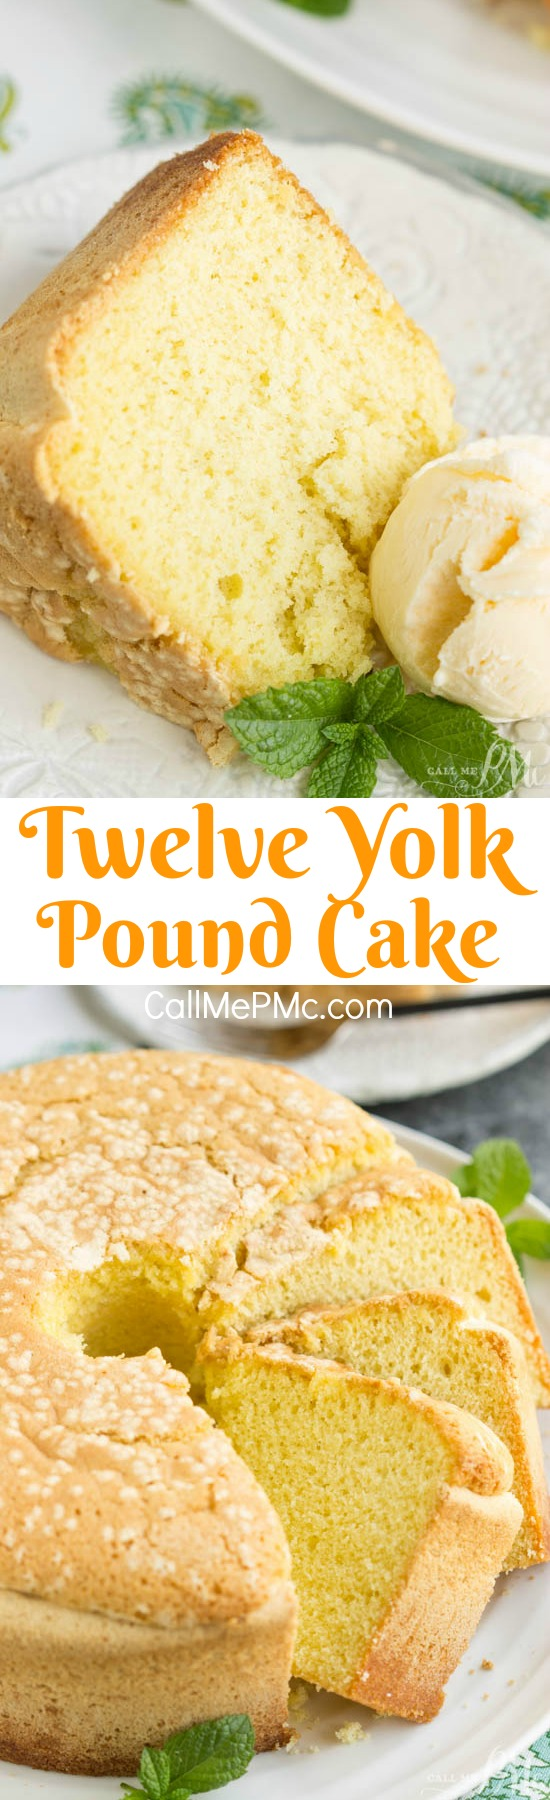 A great use of leftover egg yolks, Twelve Yolk Pound Cake, is golden and buttery. A great basic cake that's not overly sweet. Serve this with a good vanilla ice cream and rich caramel sauce. Twelve Yolk Pound Cake is versatile, buttery, and delicious.